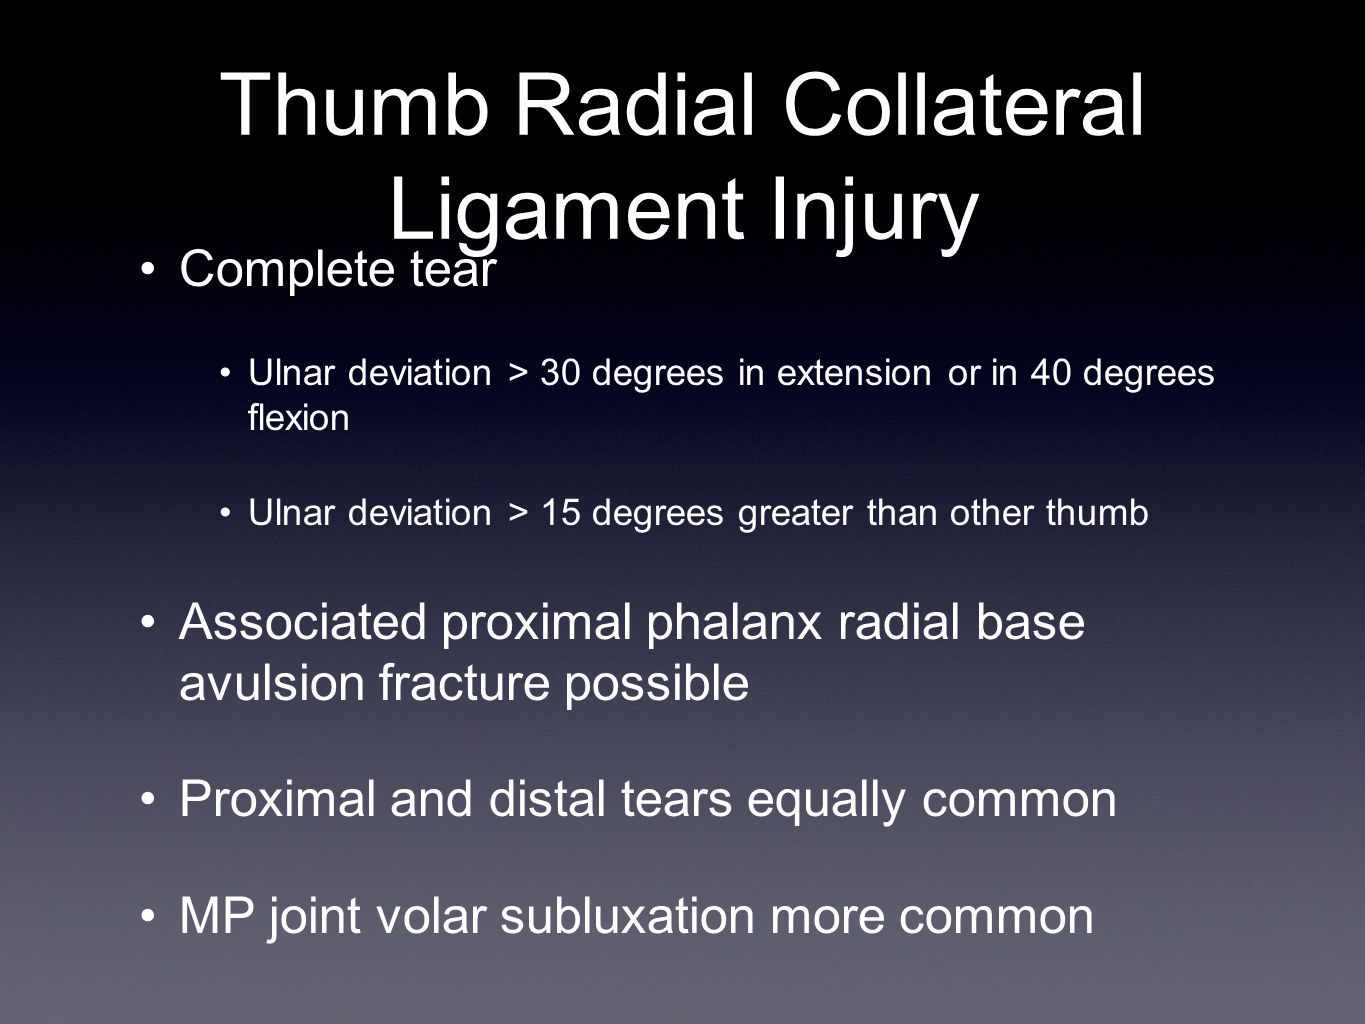 Thumb Radial Collateral Ligament Injury